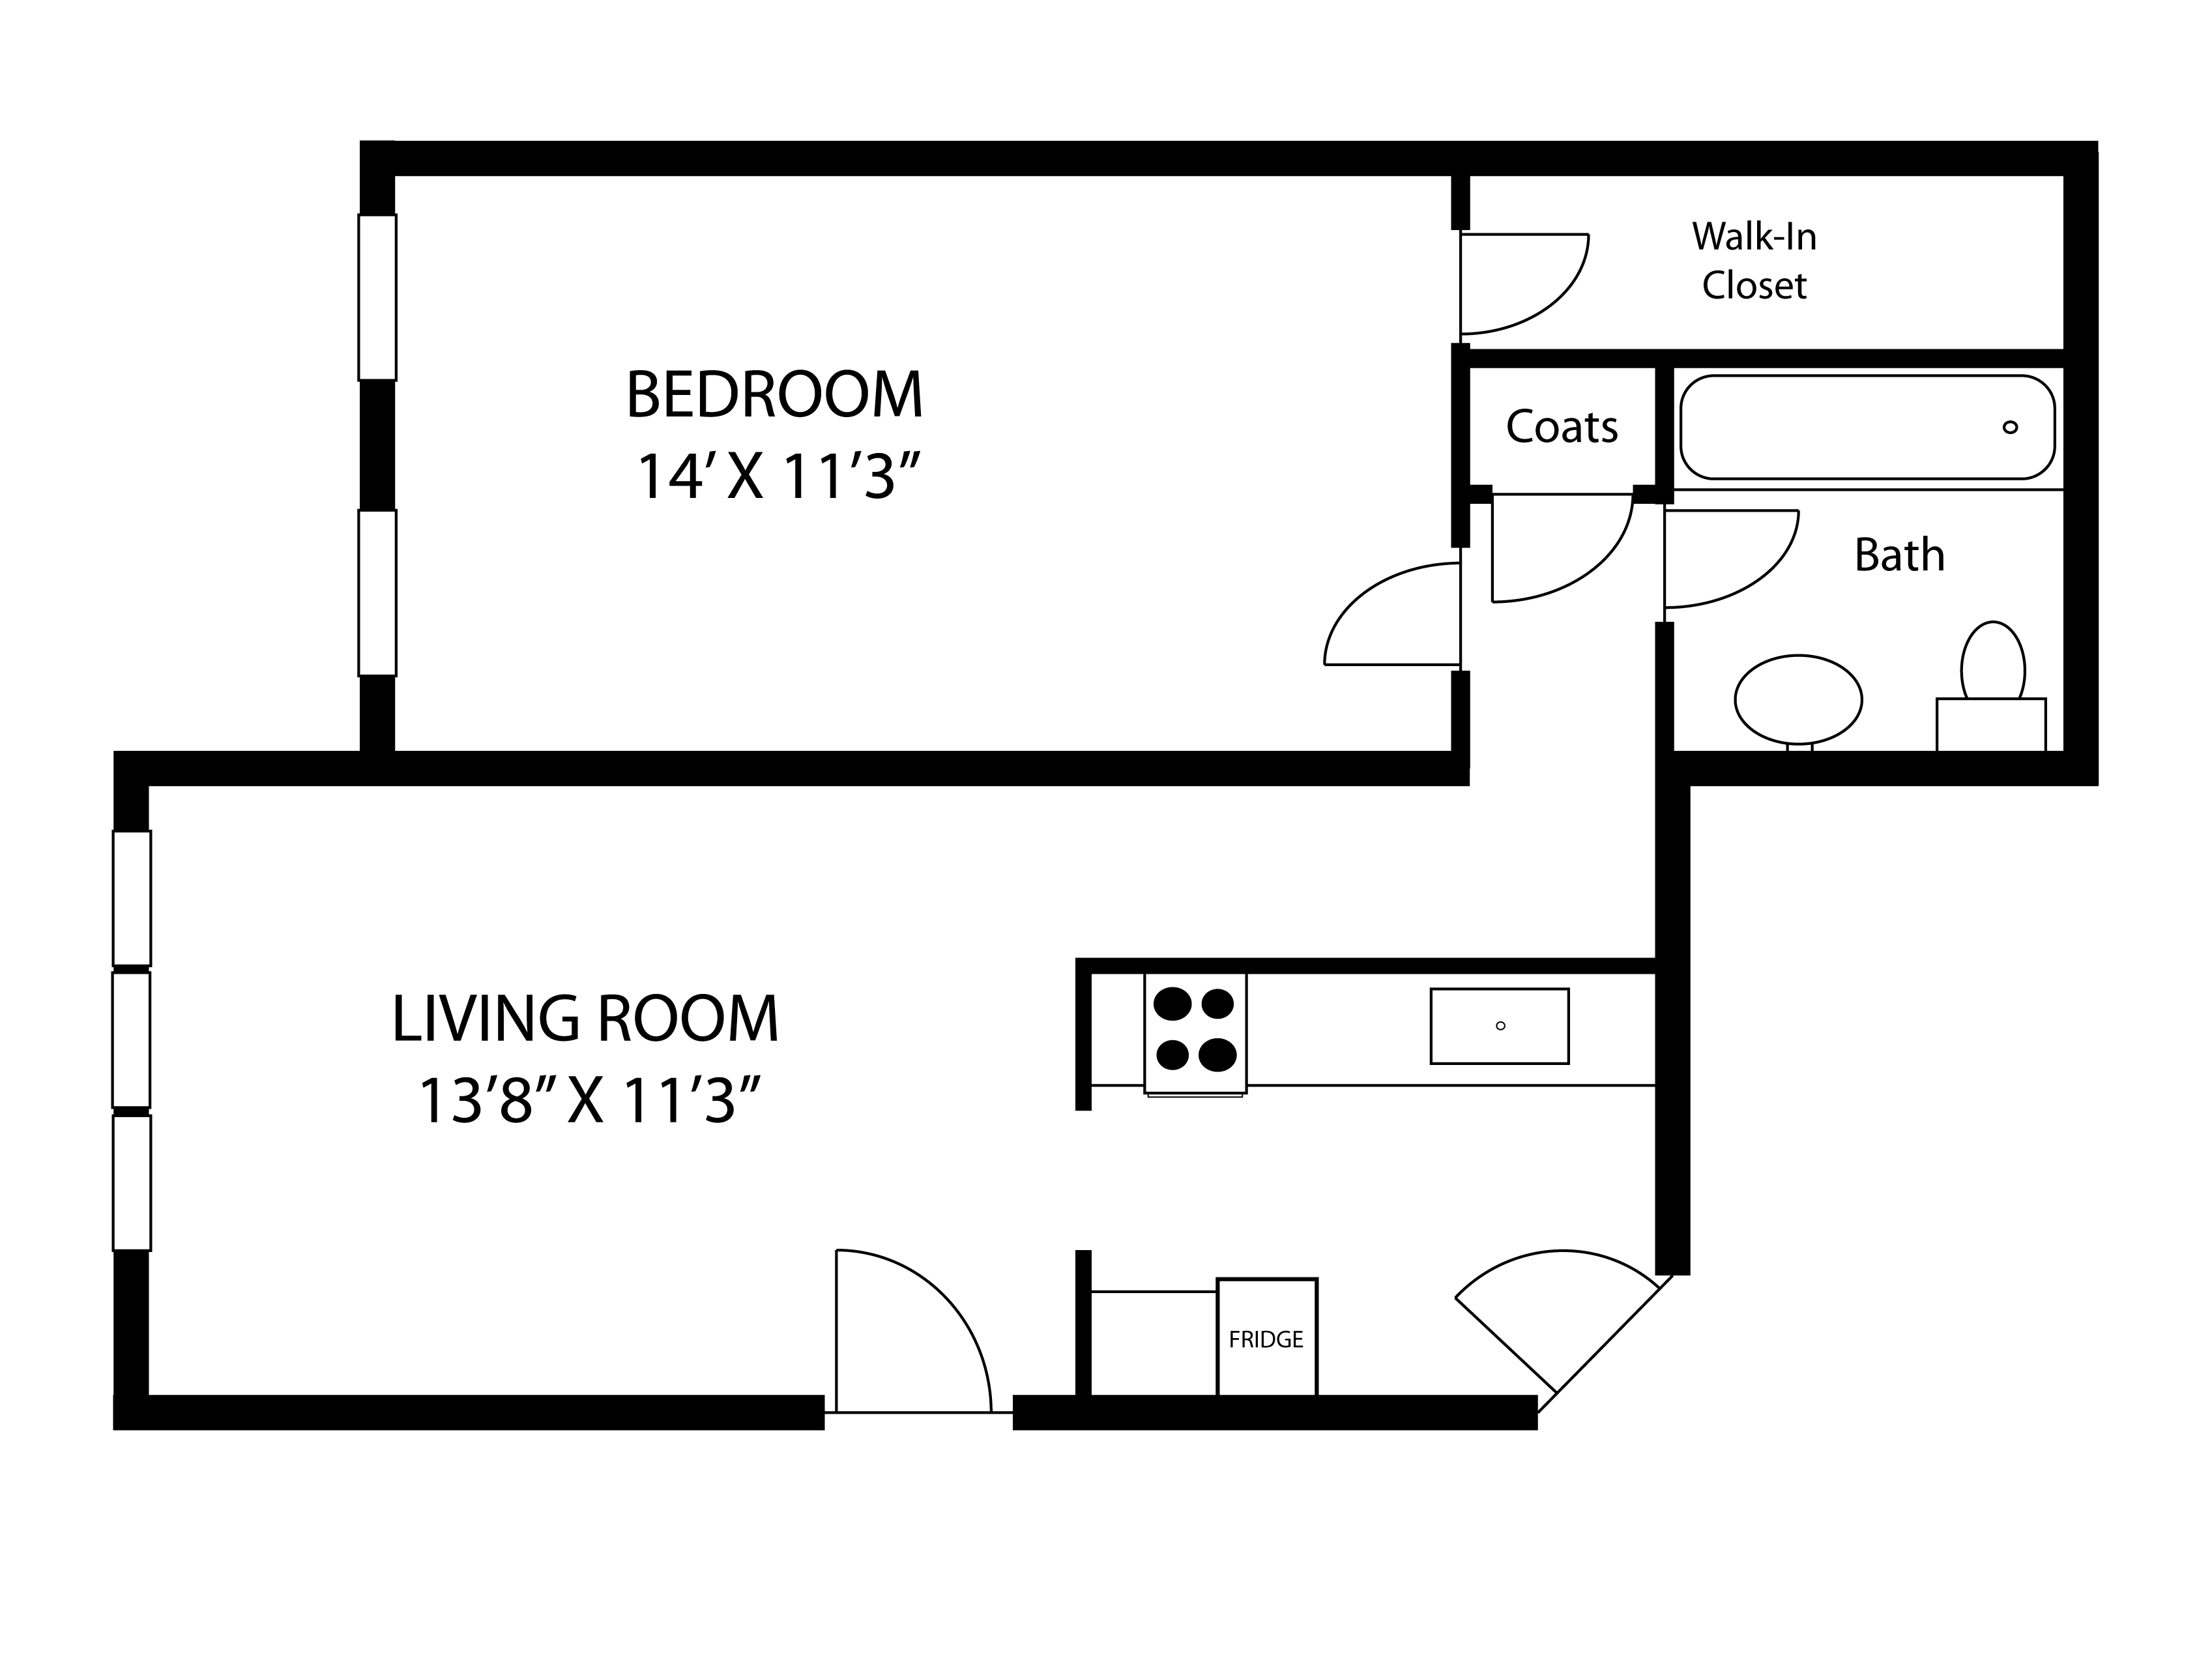 Floor Plans of Oxford Apartments in Stoughton, MA